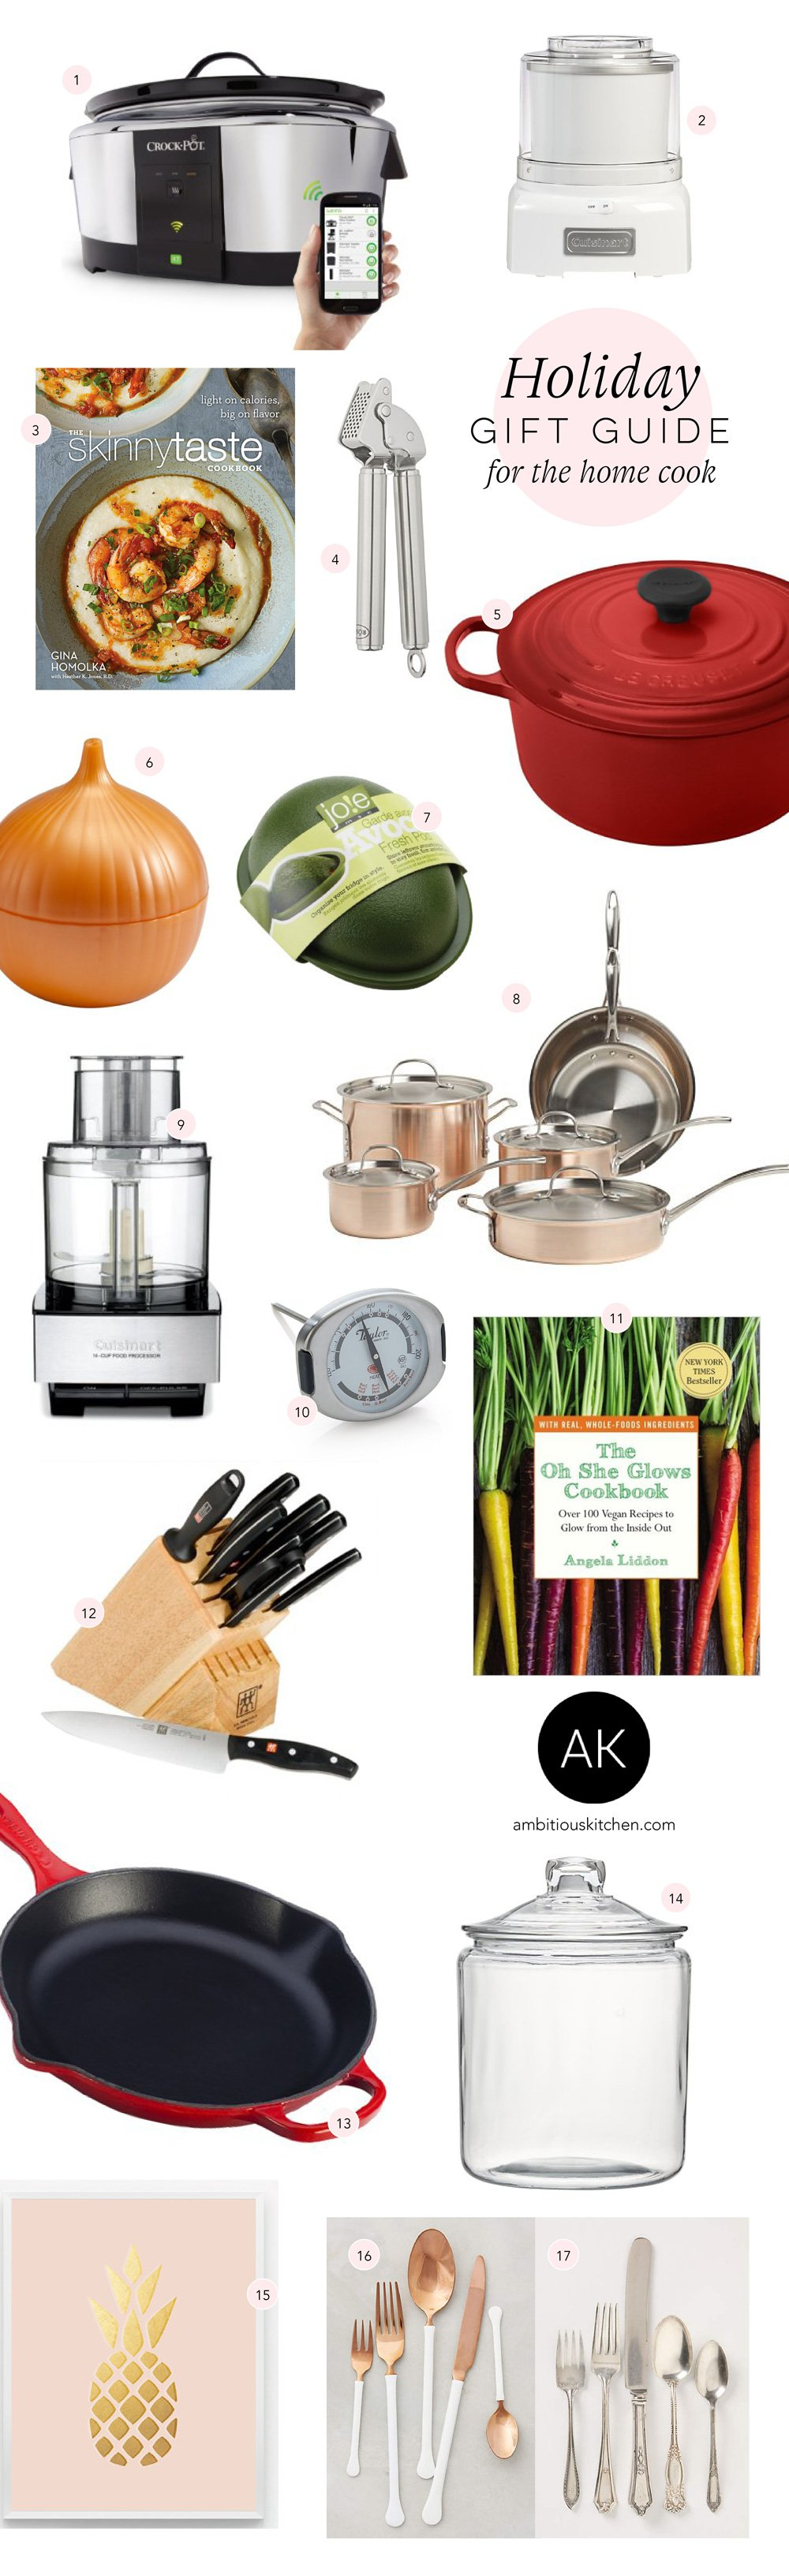 Gift For The Kitchen Ak Gift Guide 2015 For The Home Cook Ambitious Kitchen